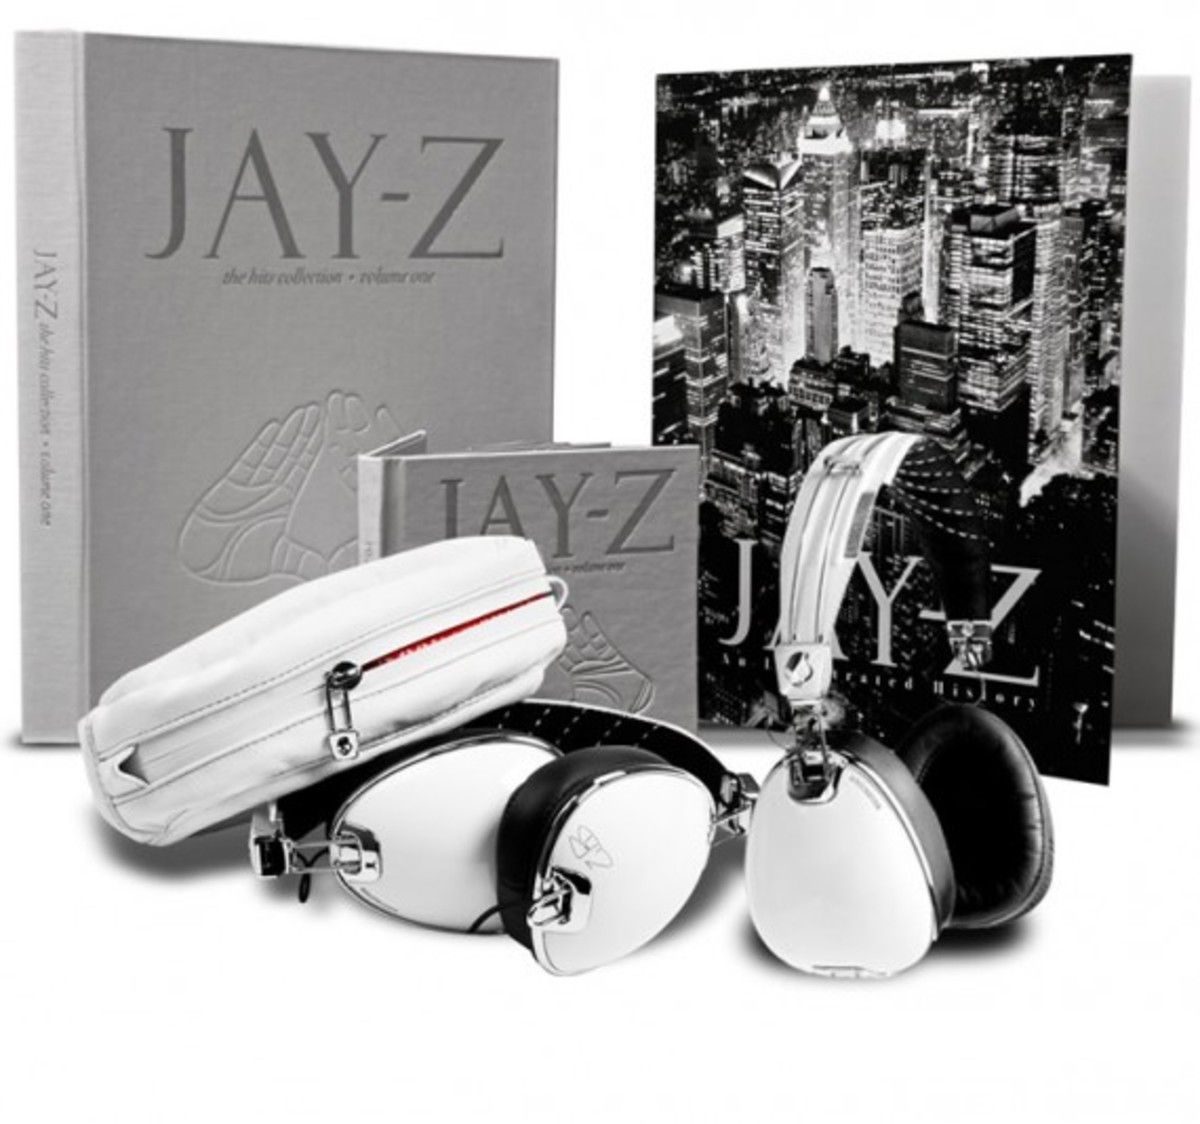 jay-z-the-hits-collection-collectors-edition-1